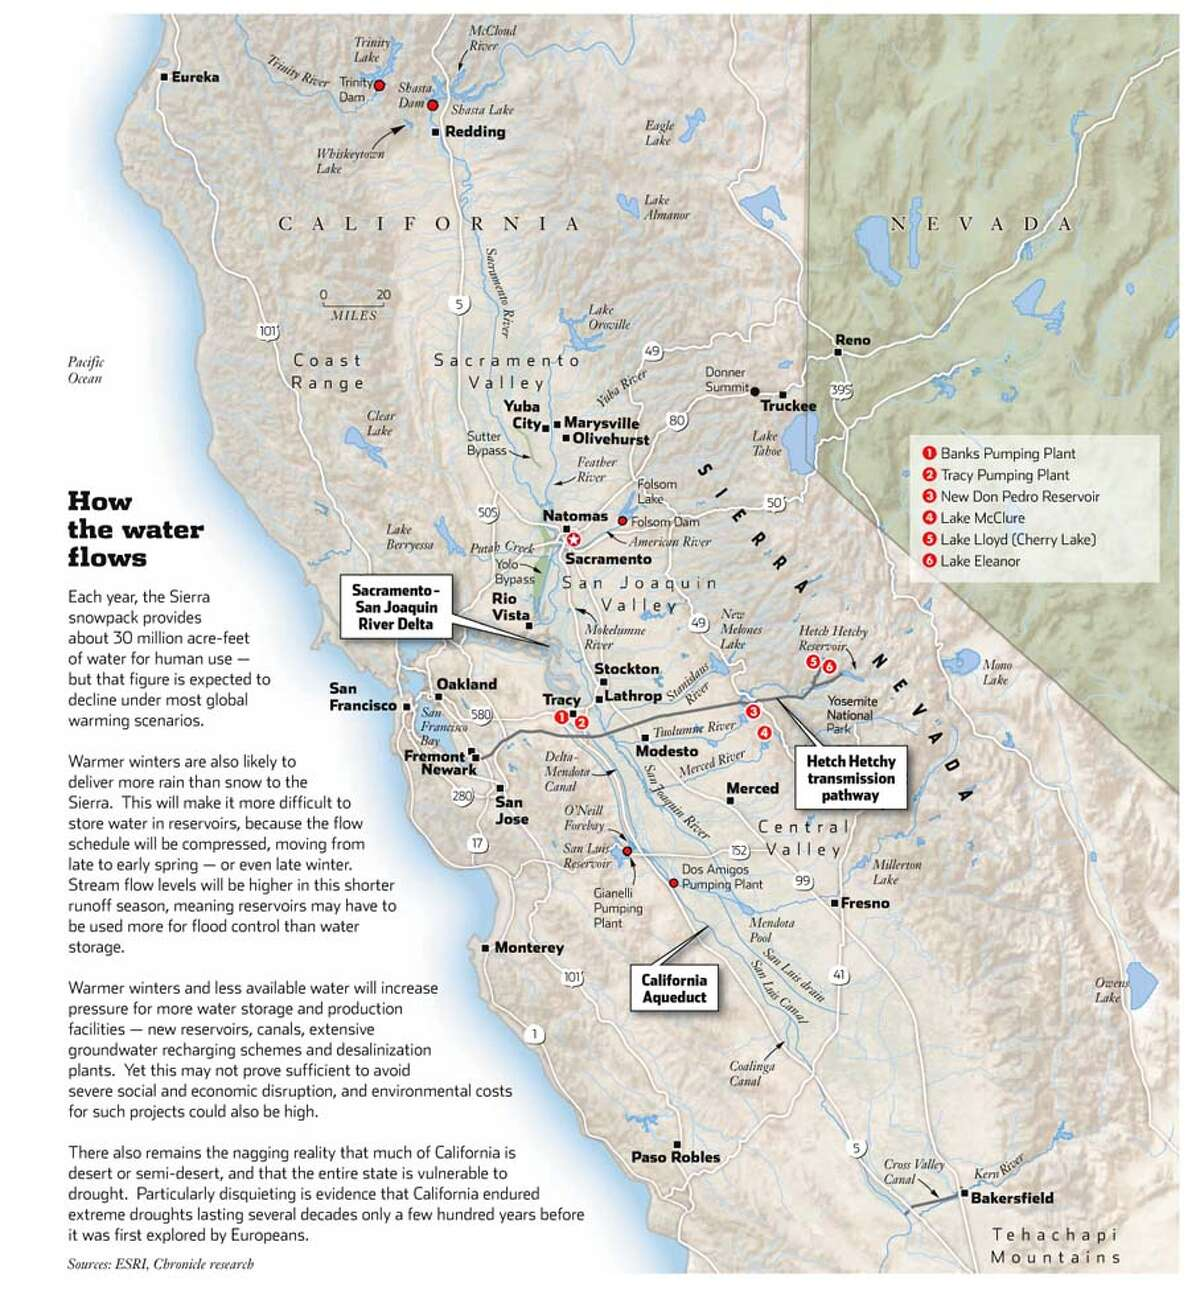 How the Water Flows. Chronicle Graphic